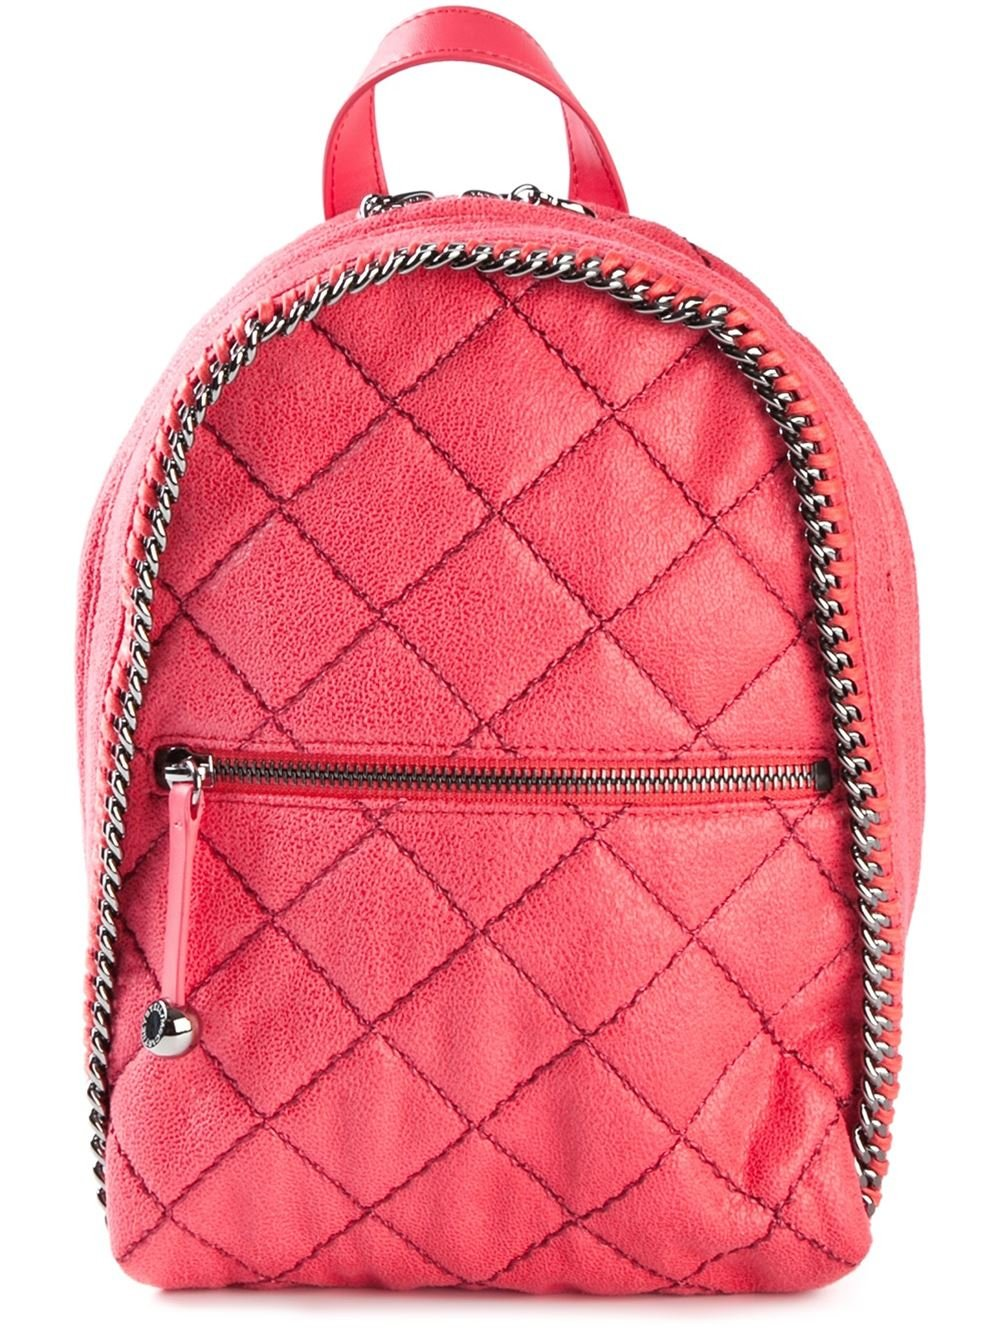 Stella McCartney 'Falabella' Quilted Backpack in Pink & Purple (Pink)